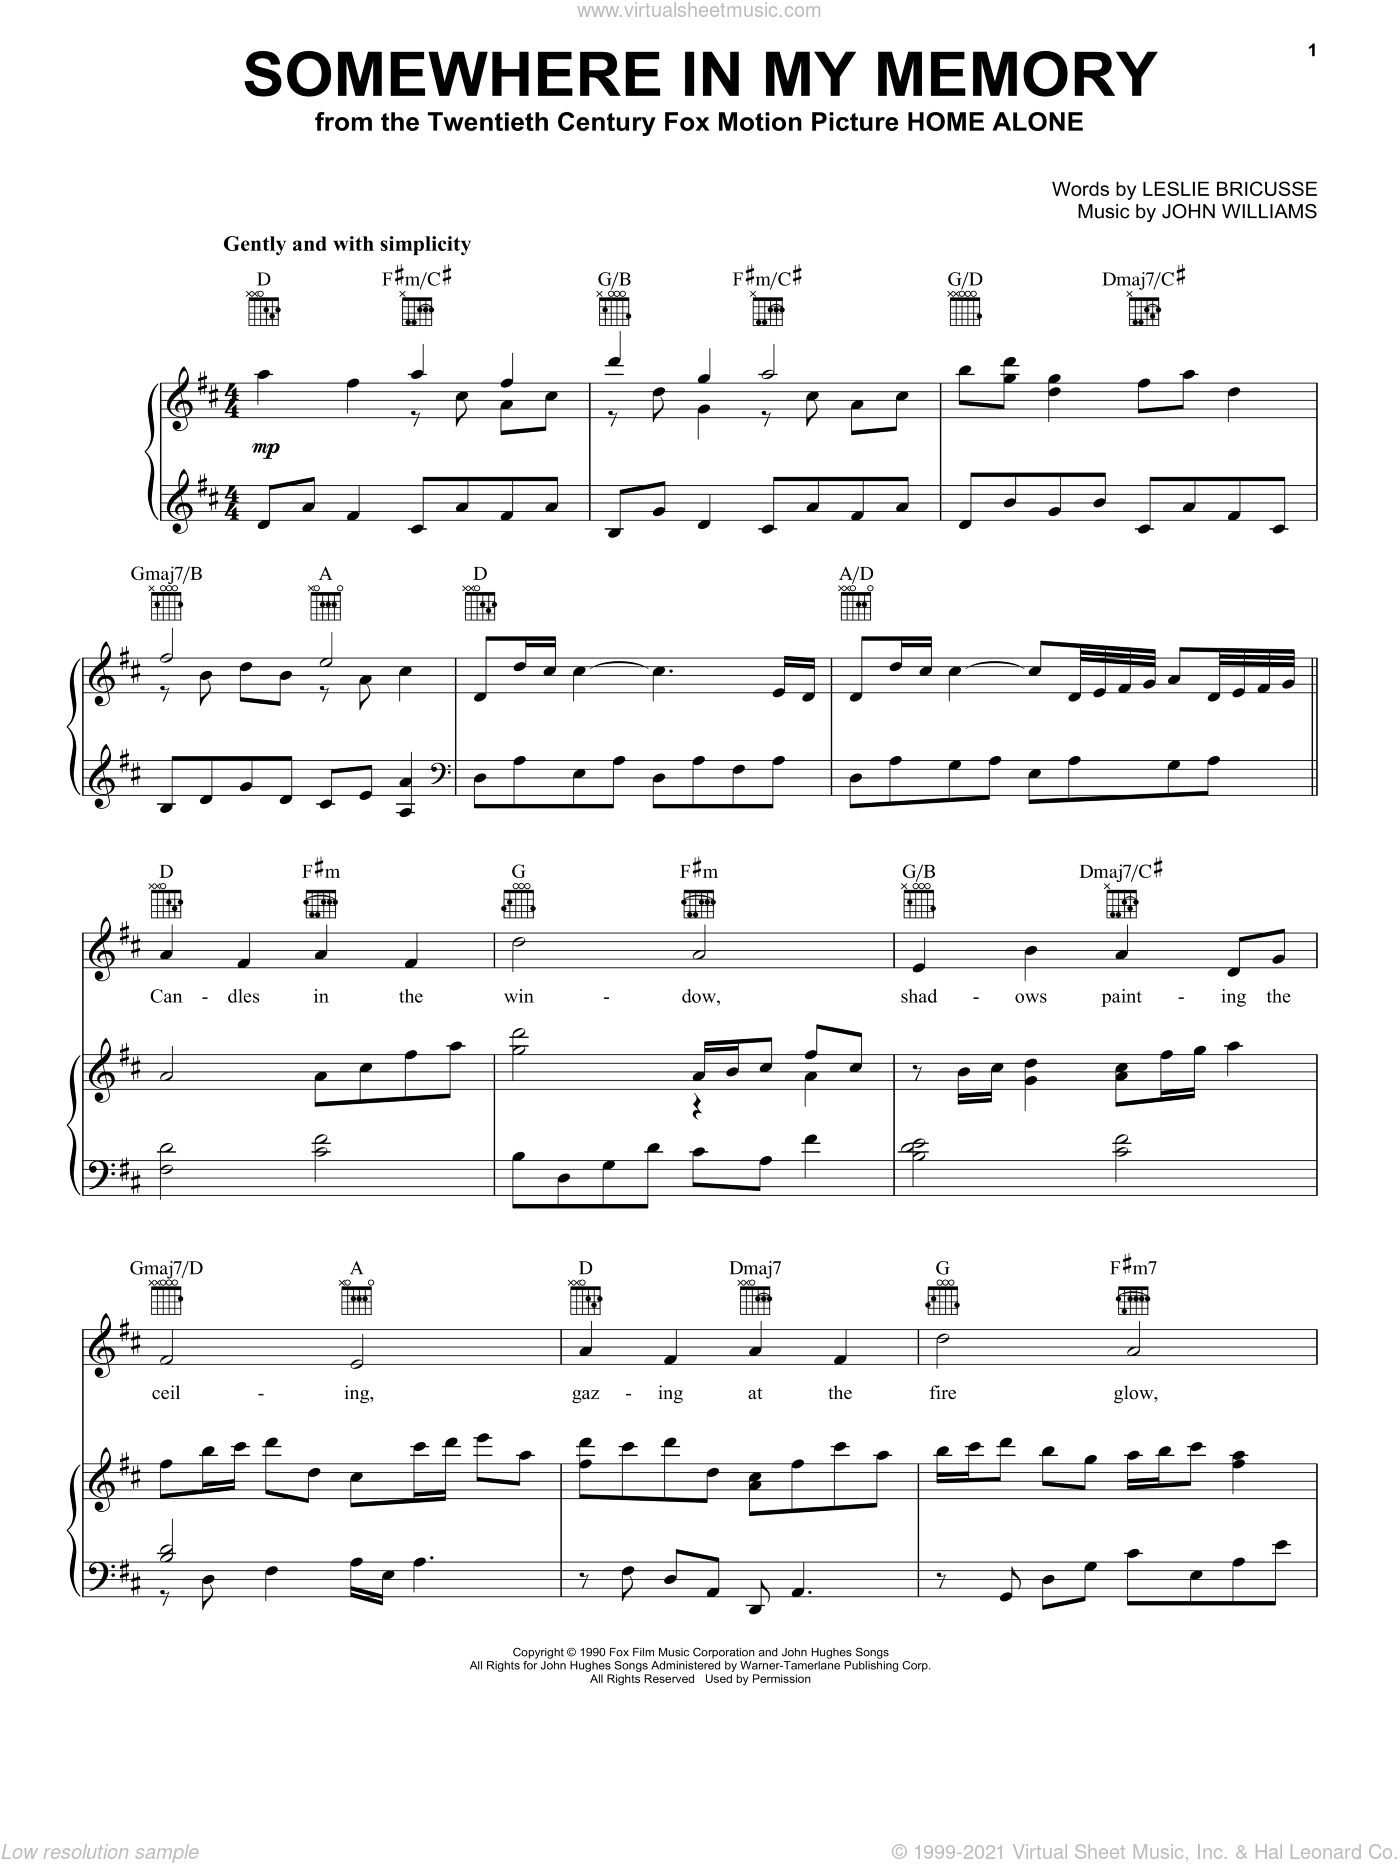 Somewhere In My Memory sheet music for voice, piano or guitar by John Williams and Leslie Bricusse, intermediate skill level